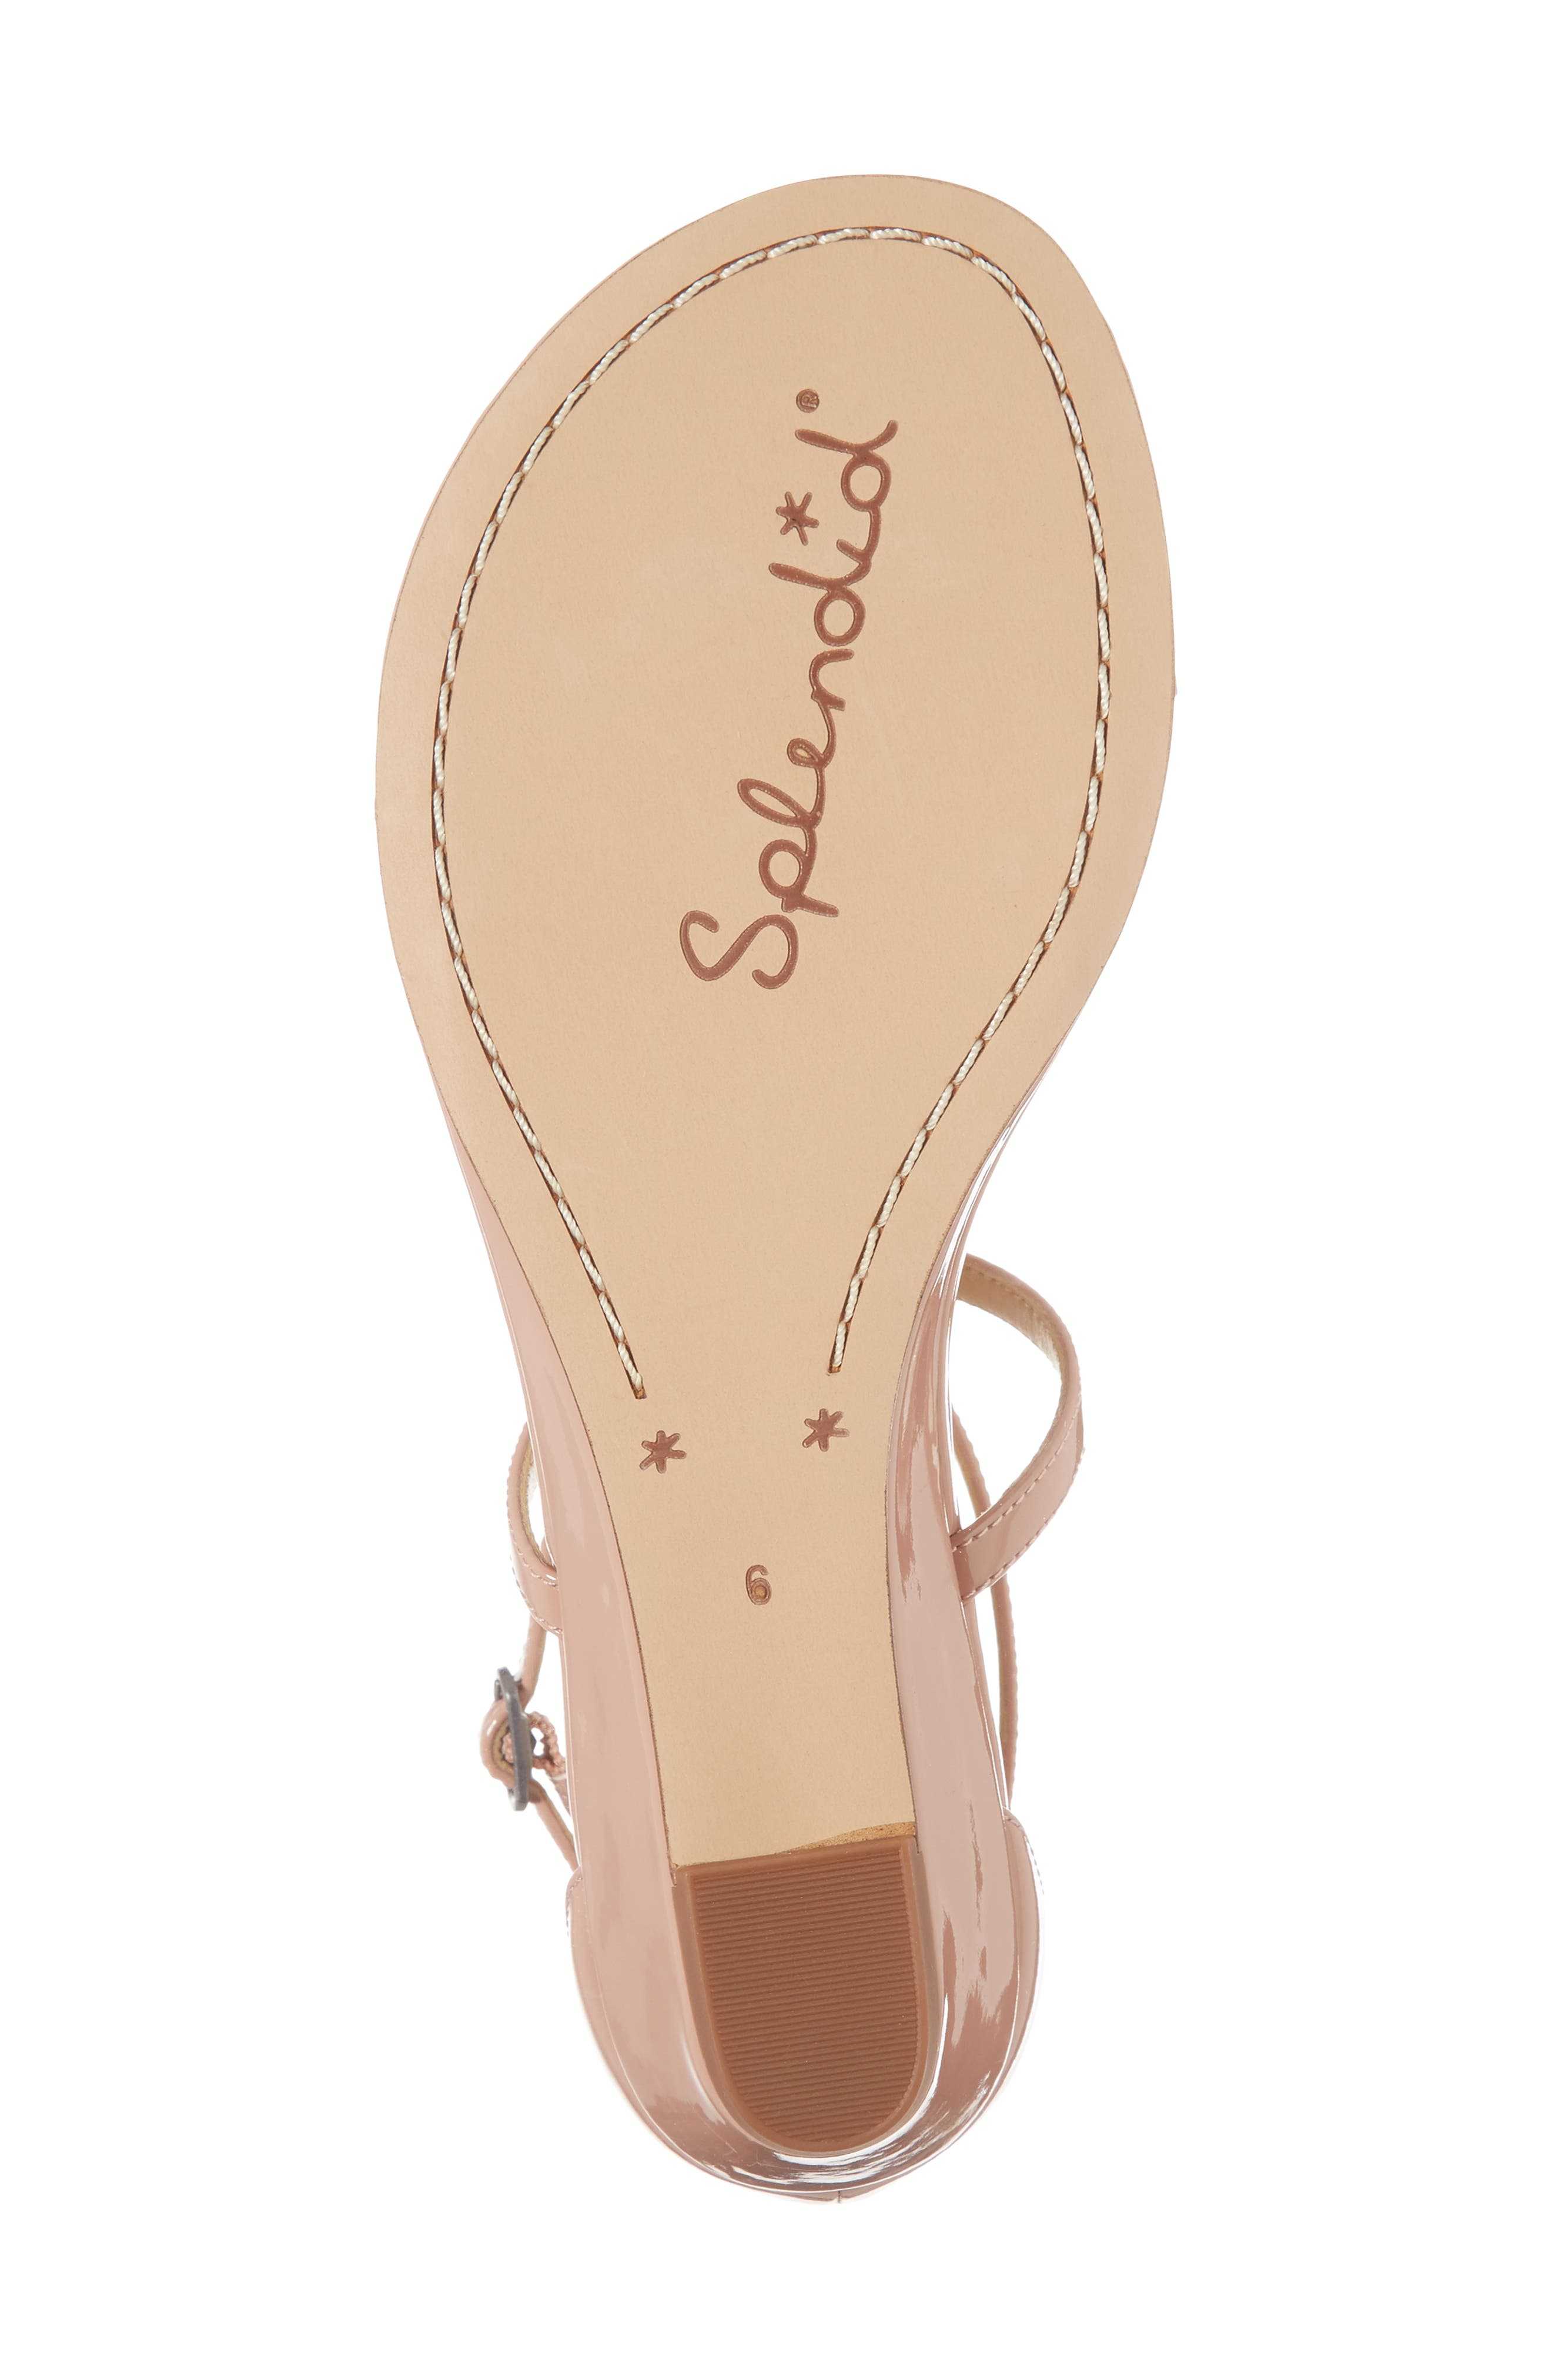 Bryce T-Strap Wedge Sandal,                             Alternate thumbnail 6, color,                             DARK BLUSH PATENT